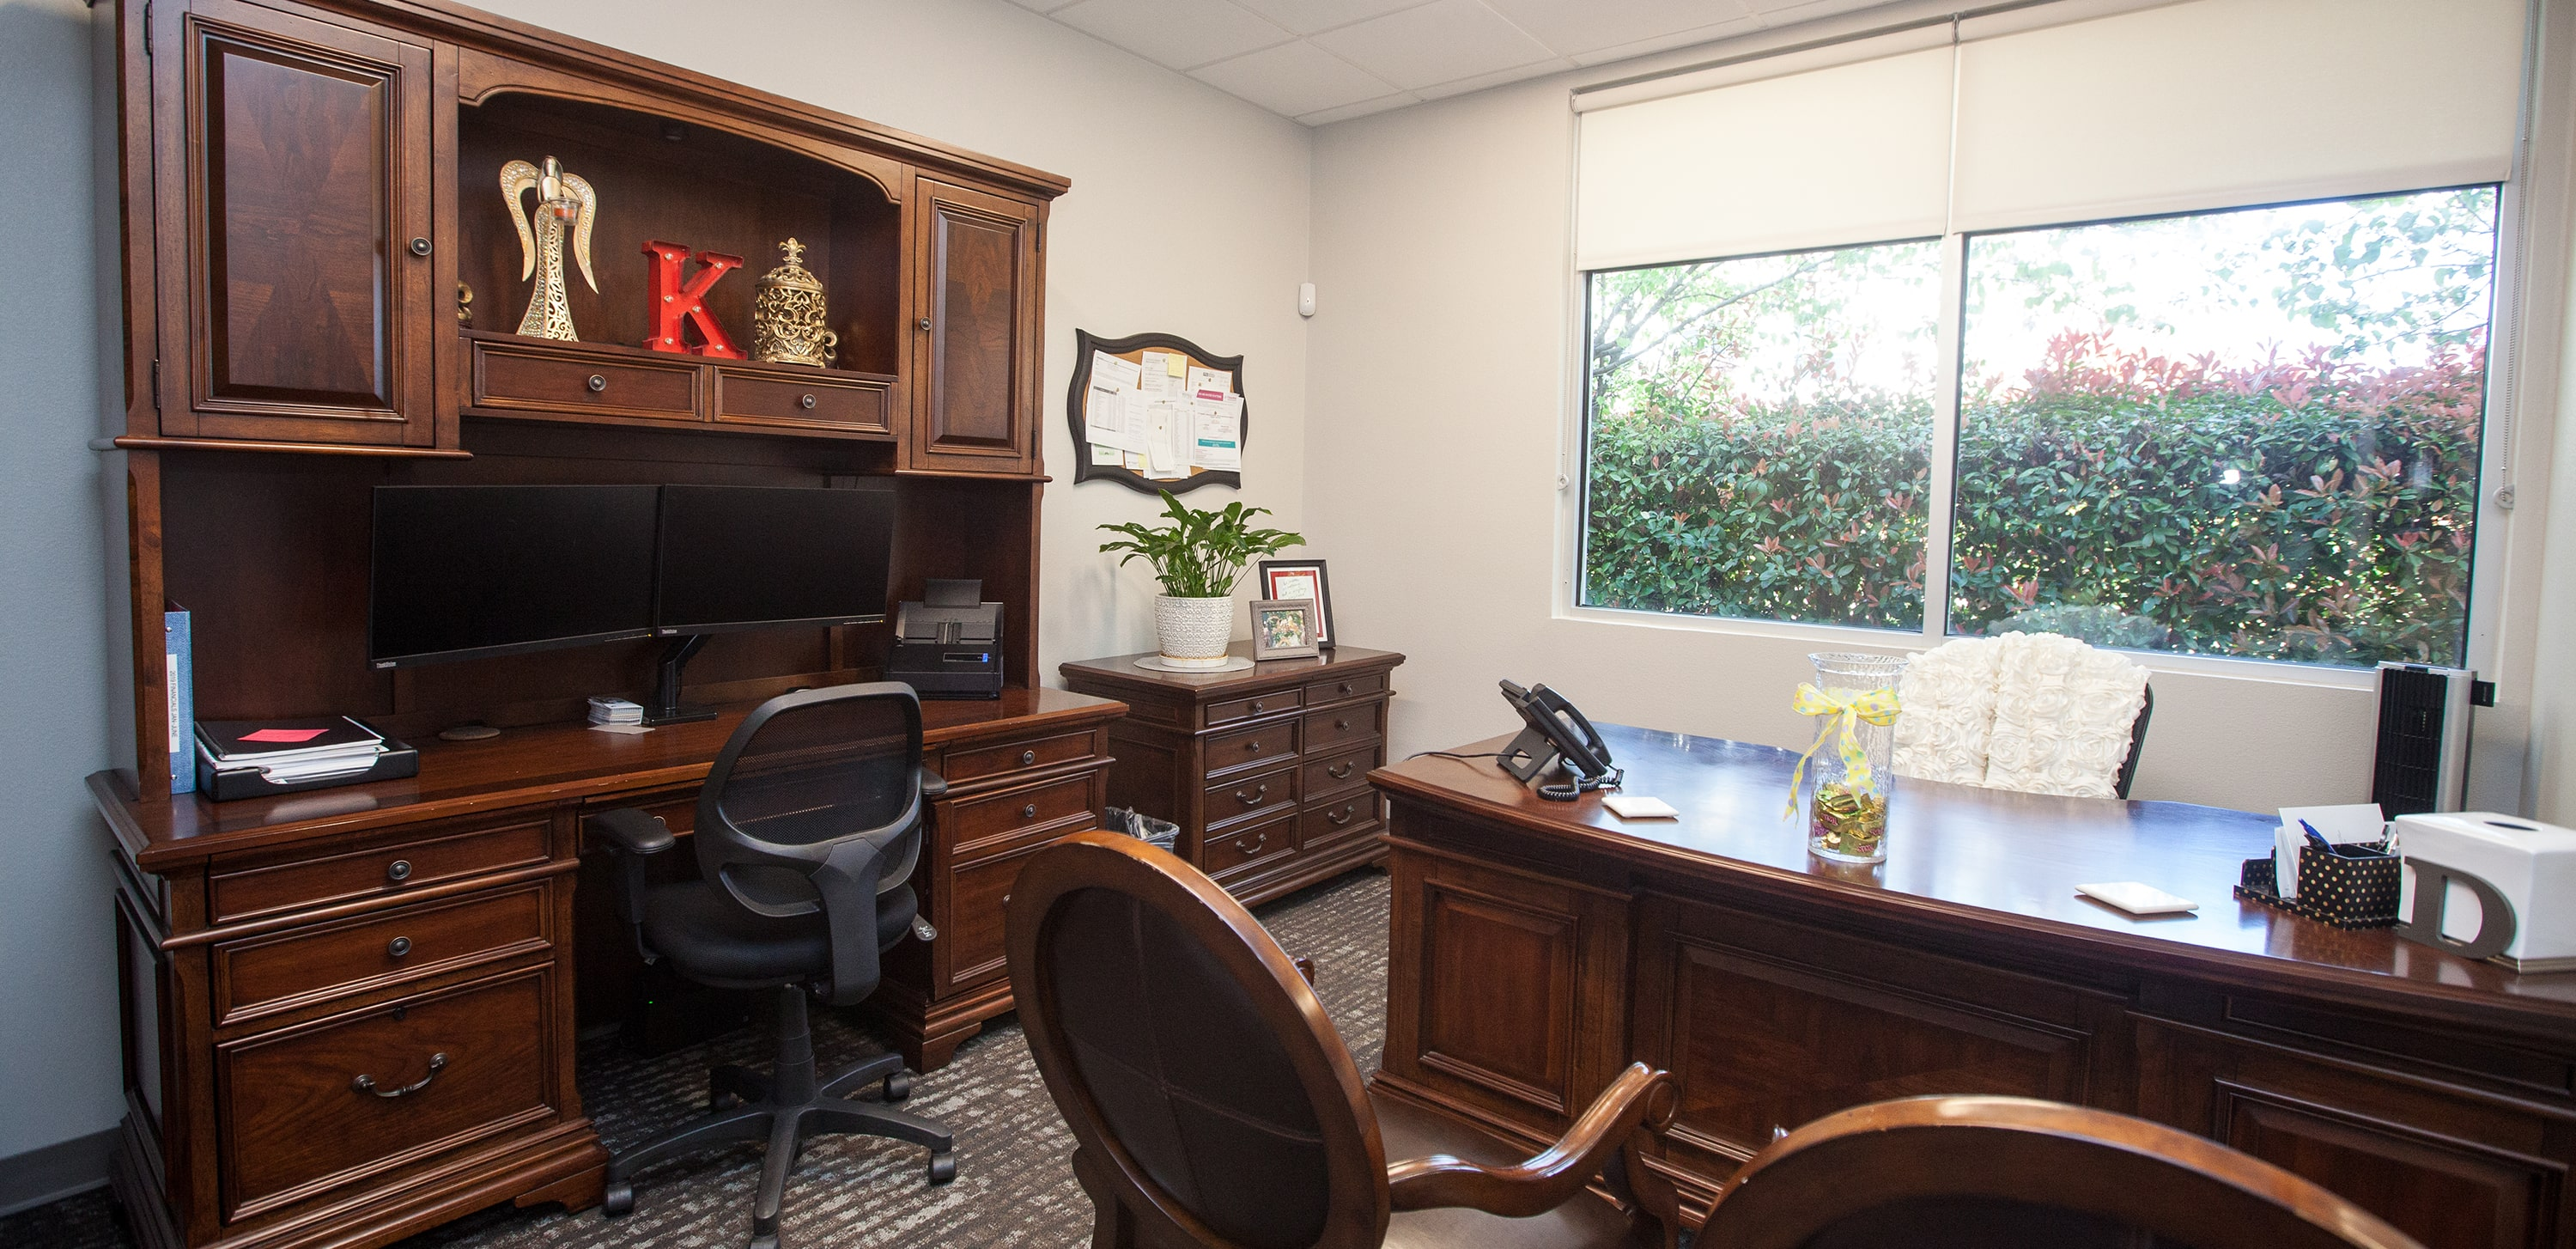 Ardent General Inc - Dr. Demera's Office